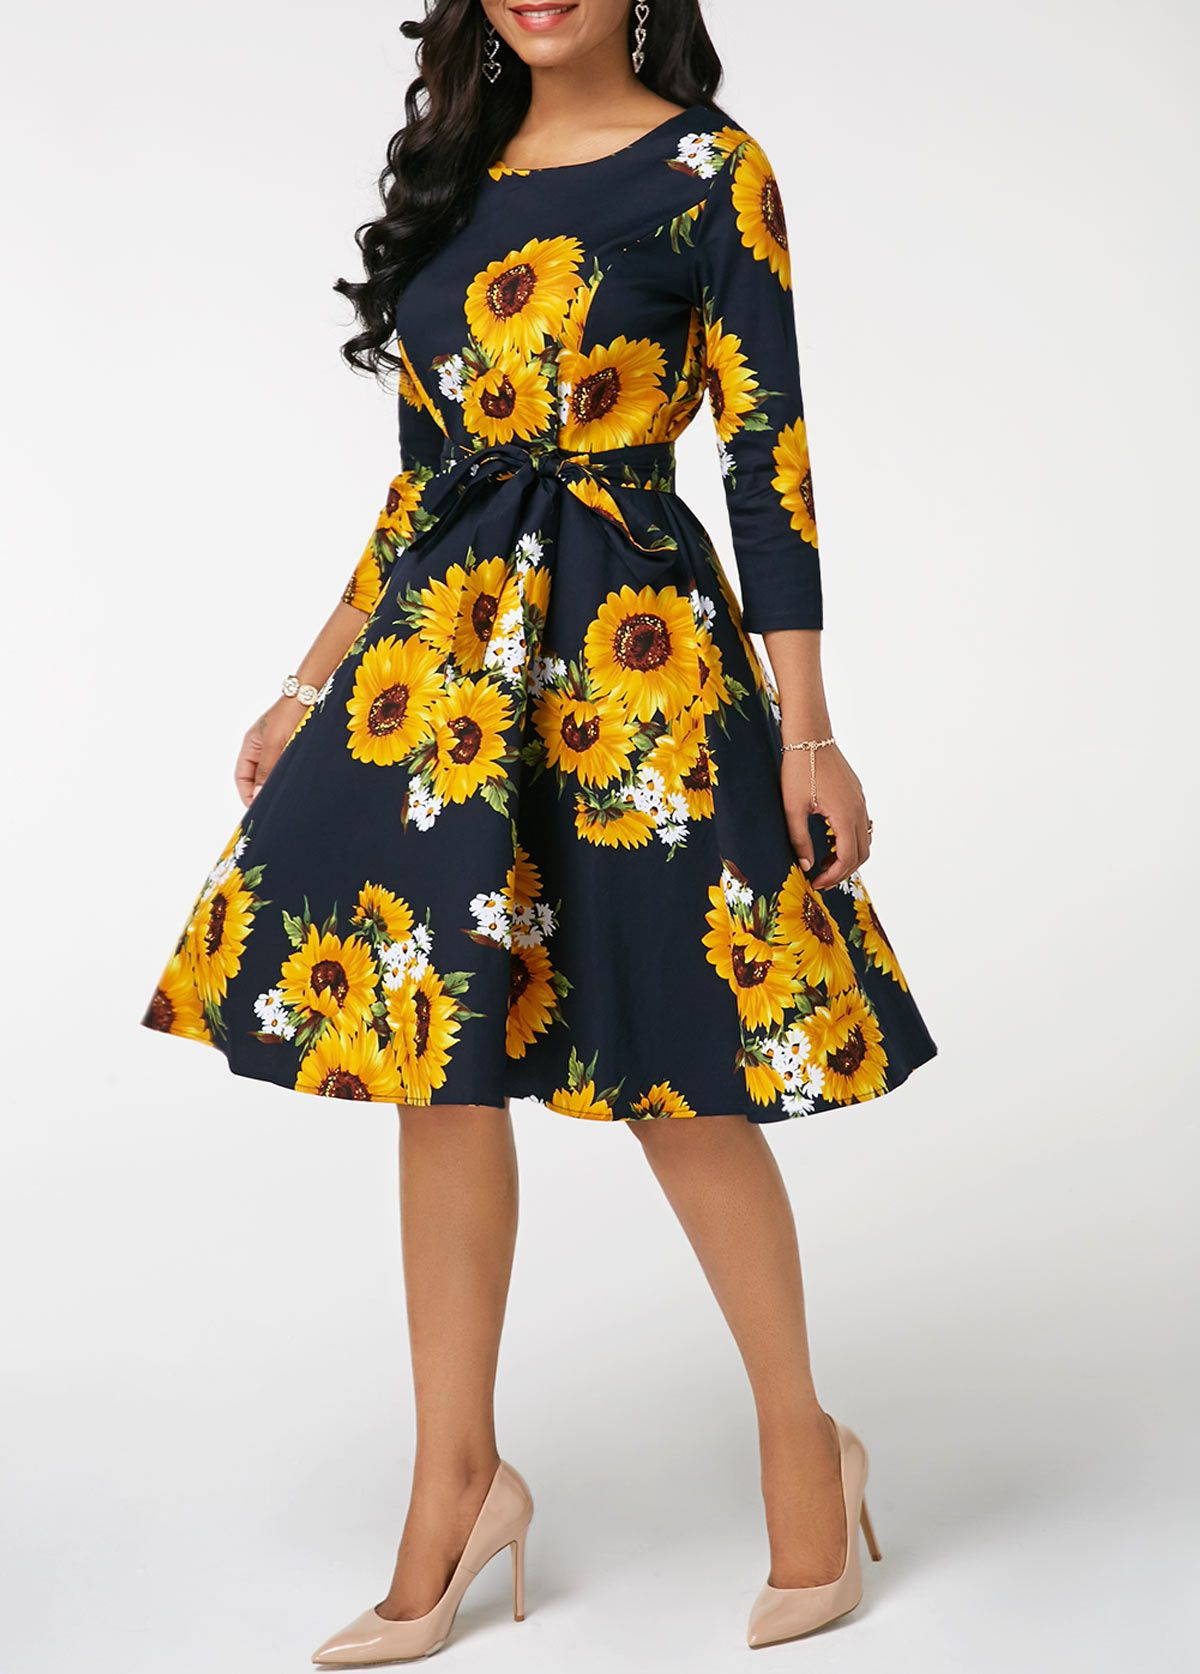 db7159abecba2 Round Neck Flower Print Belted Dress | Rotita.com - USD $30.03 ...